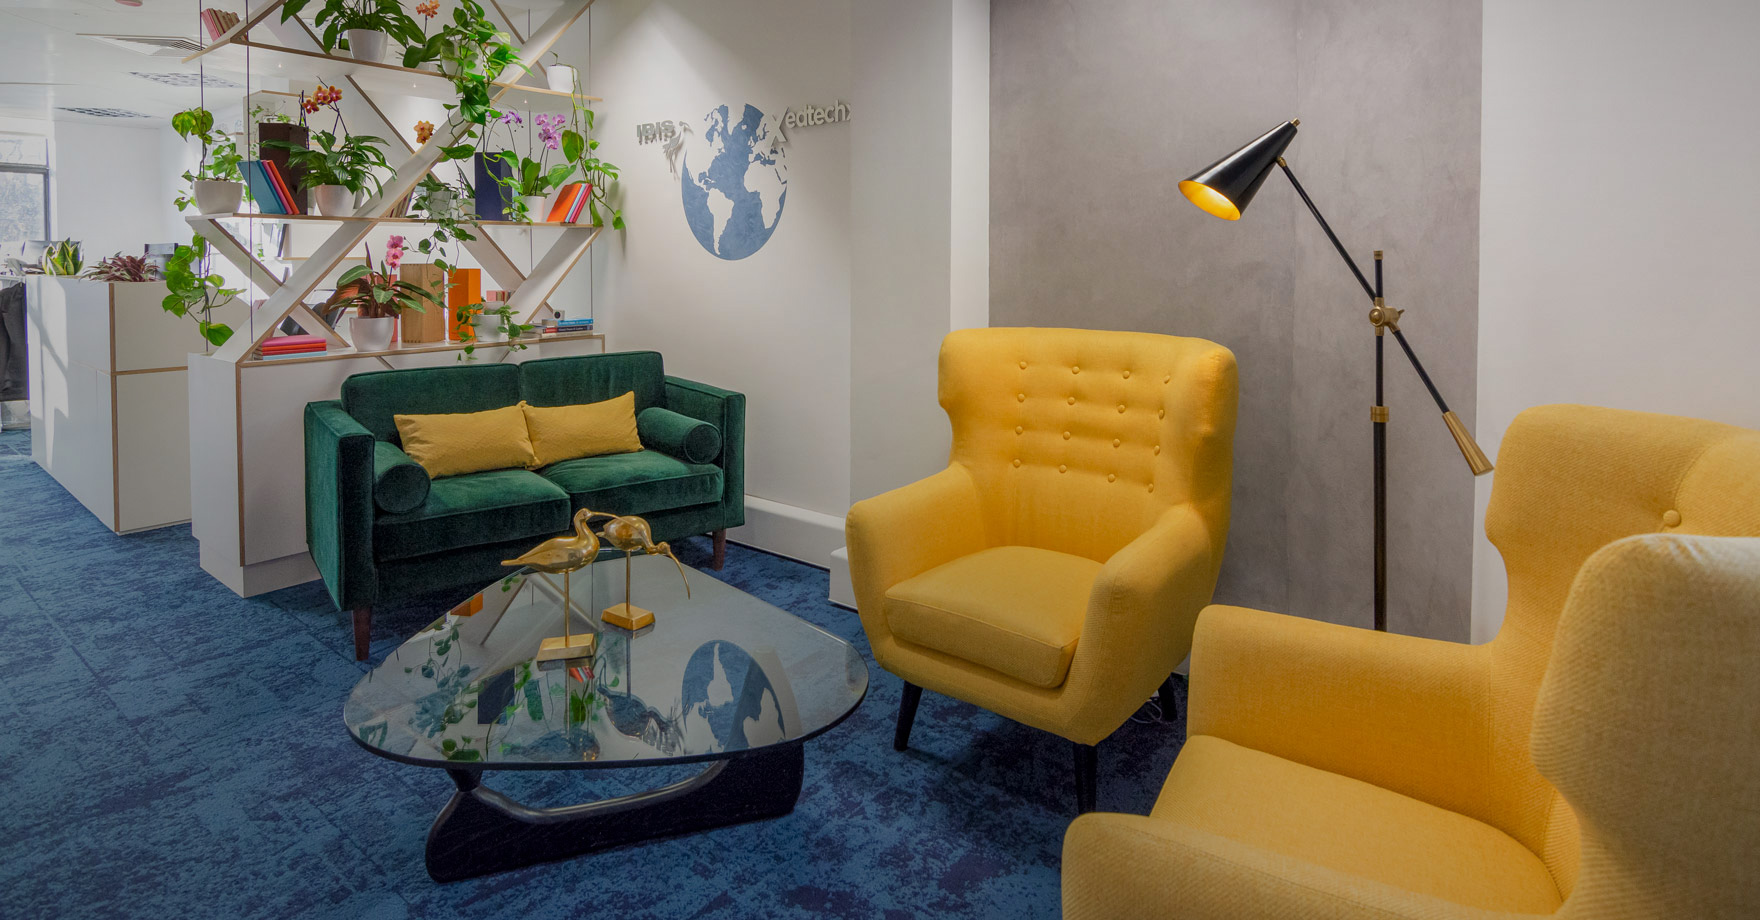 Ibis reception area design, a velvet dark green two seater sofa and bright yellow armchair with a glass table in the middle.